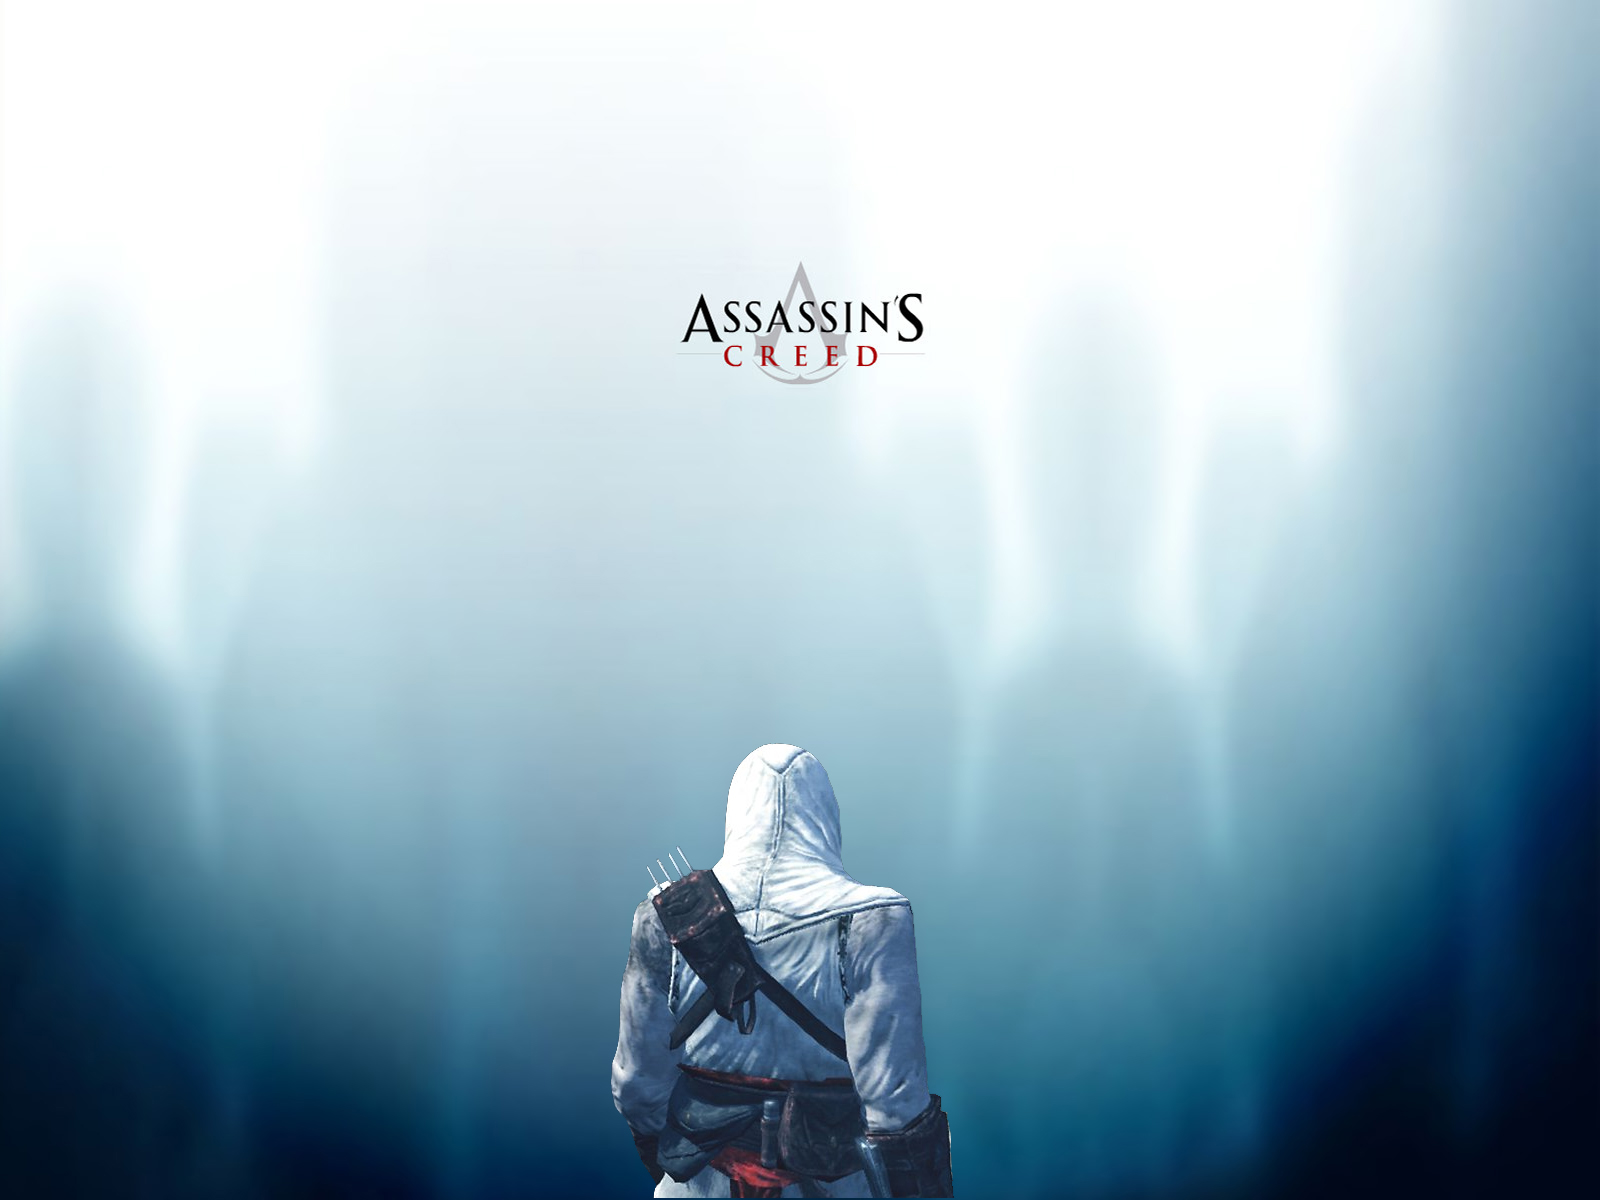 http://4.bp.blogspot.com/-ie7dO4hPf0o/ThhuNga1B-I/AAAAAAAAF70/XFhkRXkzO_s/s1600/assassin%2527s-creed-wallpaper-hd-5.jpg